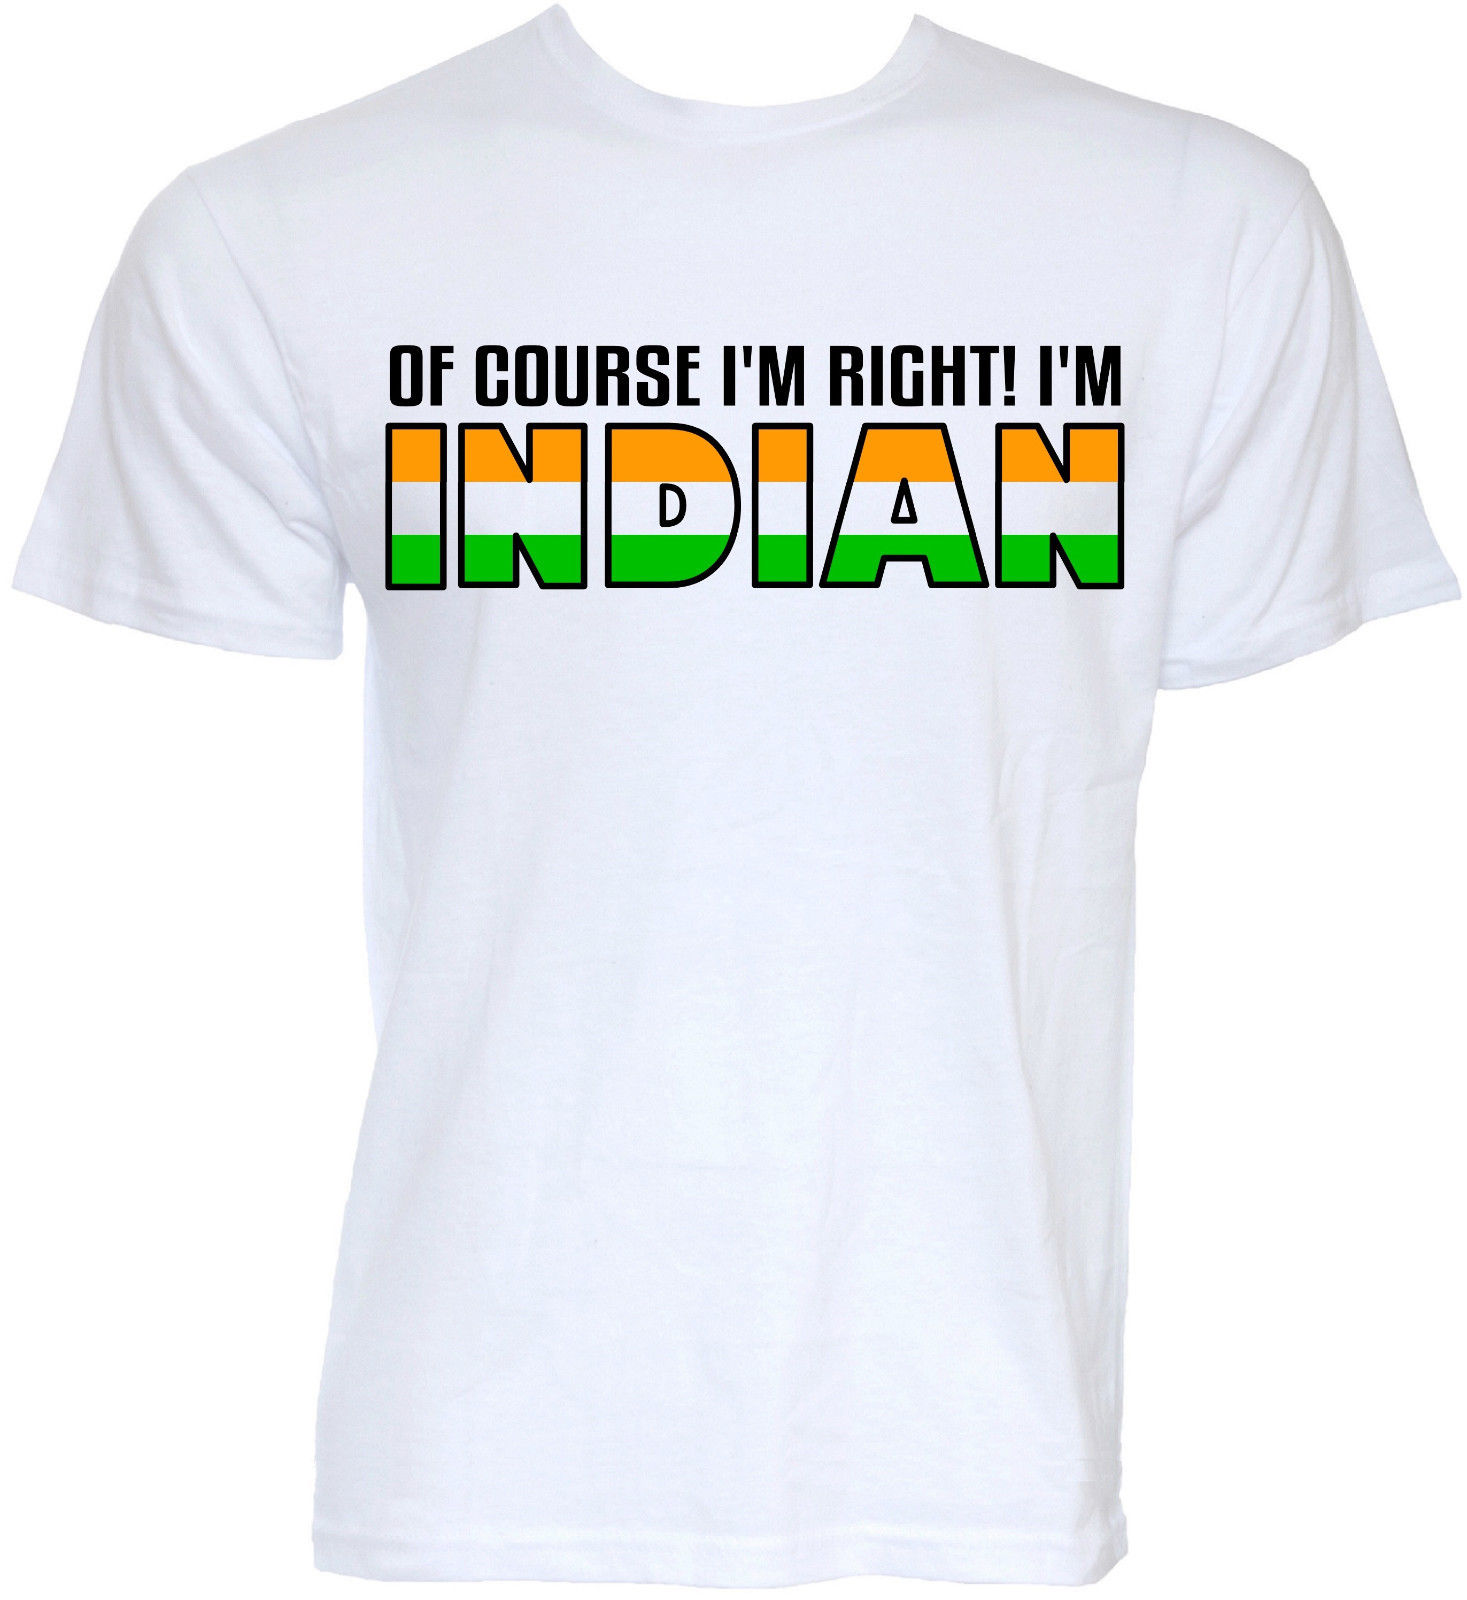 MENS FUNNY COOL NOVELTY INDIAN INDIA SLOGAN T-SHIRTS JOKE FLAG FUN GIFTS T SHIRT 2017 New Summer Men Hot Sale Fashion